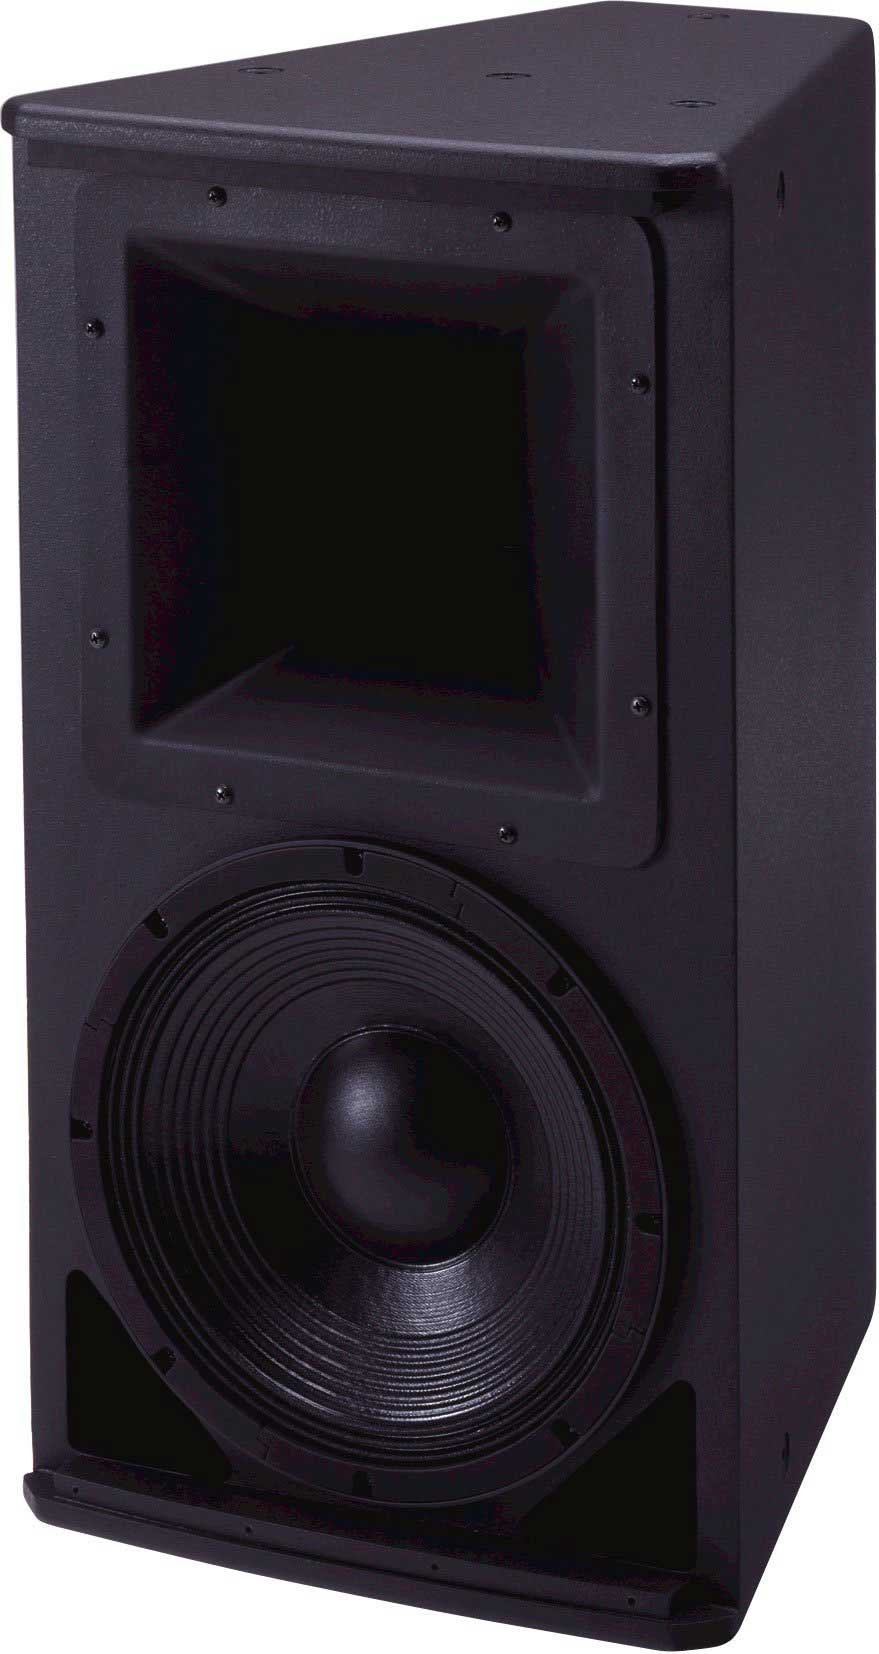 "12"" 2-way Speaker with 90x90 Rotatable Coverage, Black"